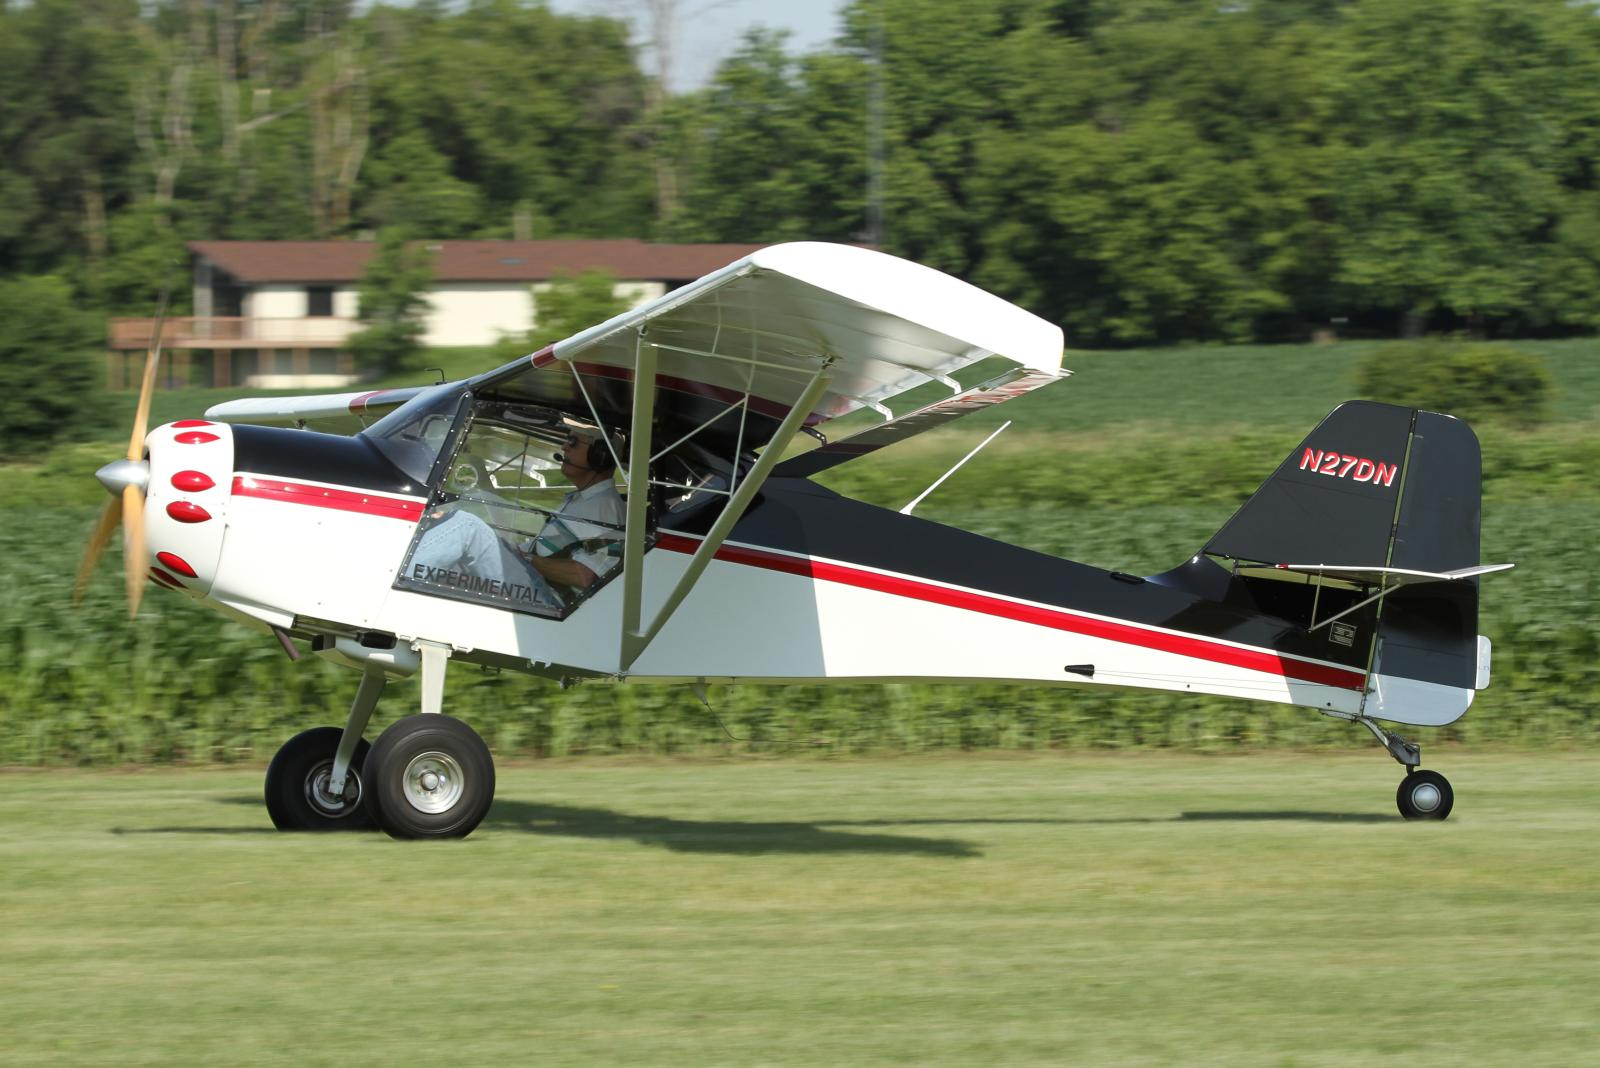 Ridge Runner Aircraft For Sale Autos Post